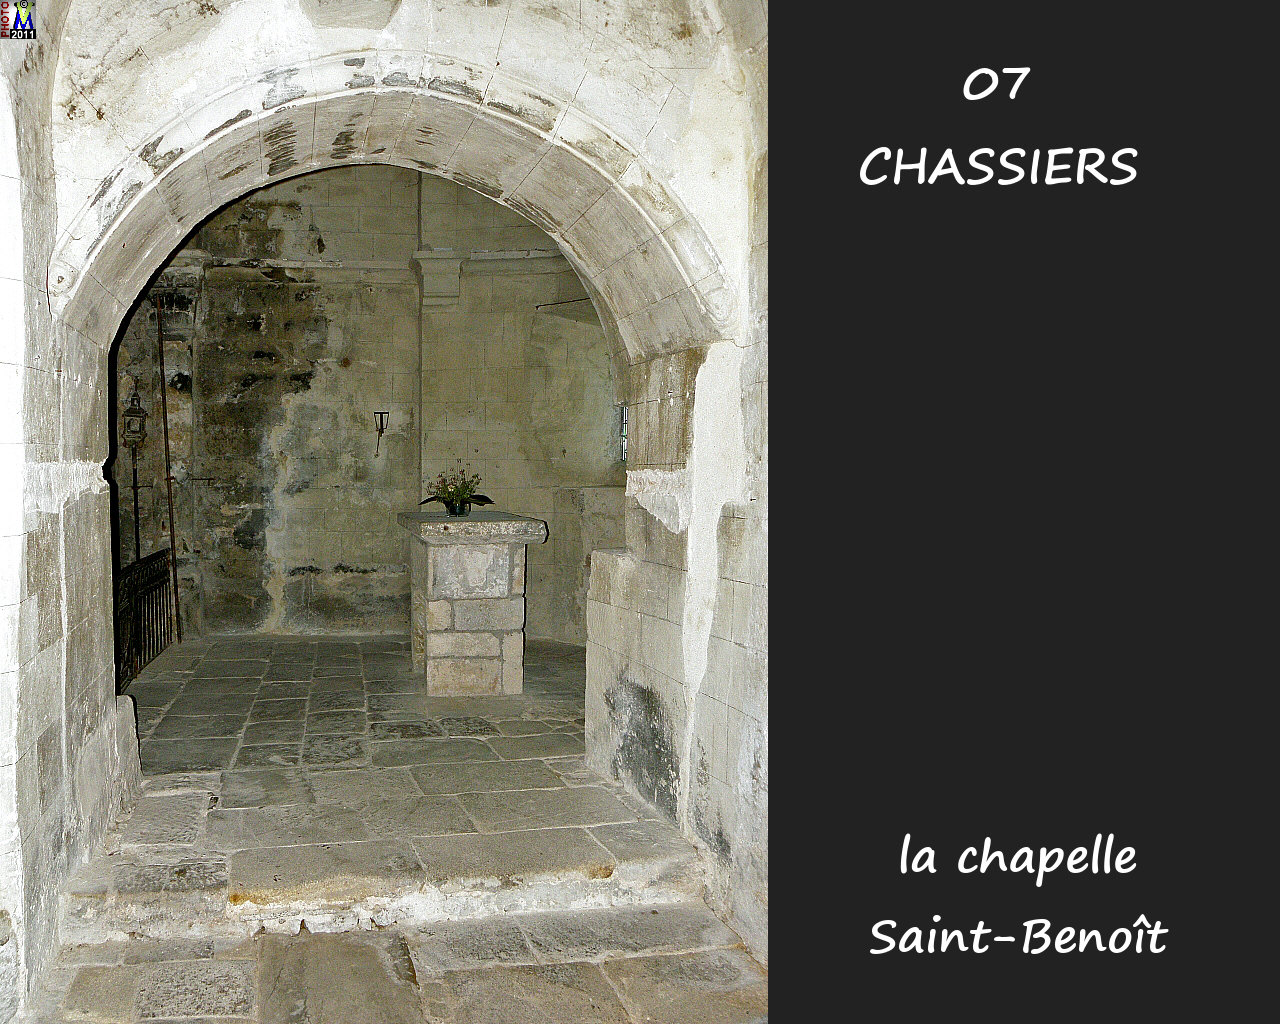 07CHASSIERS_chapelle_204.jpg